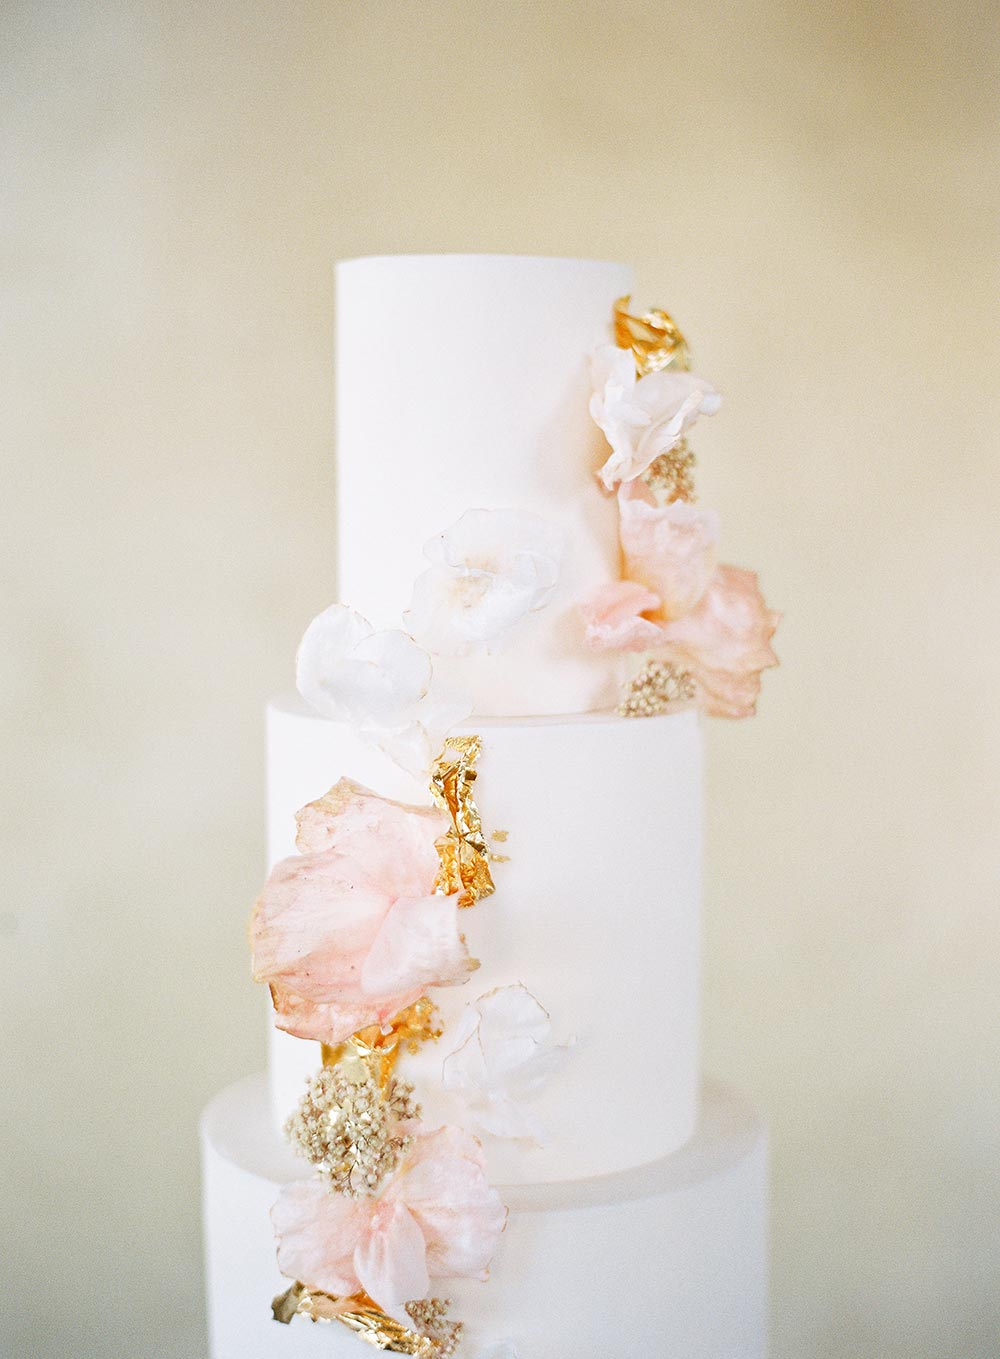 pink and gold speckled wedding cake